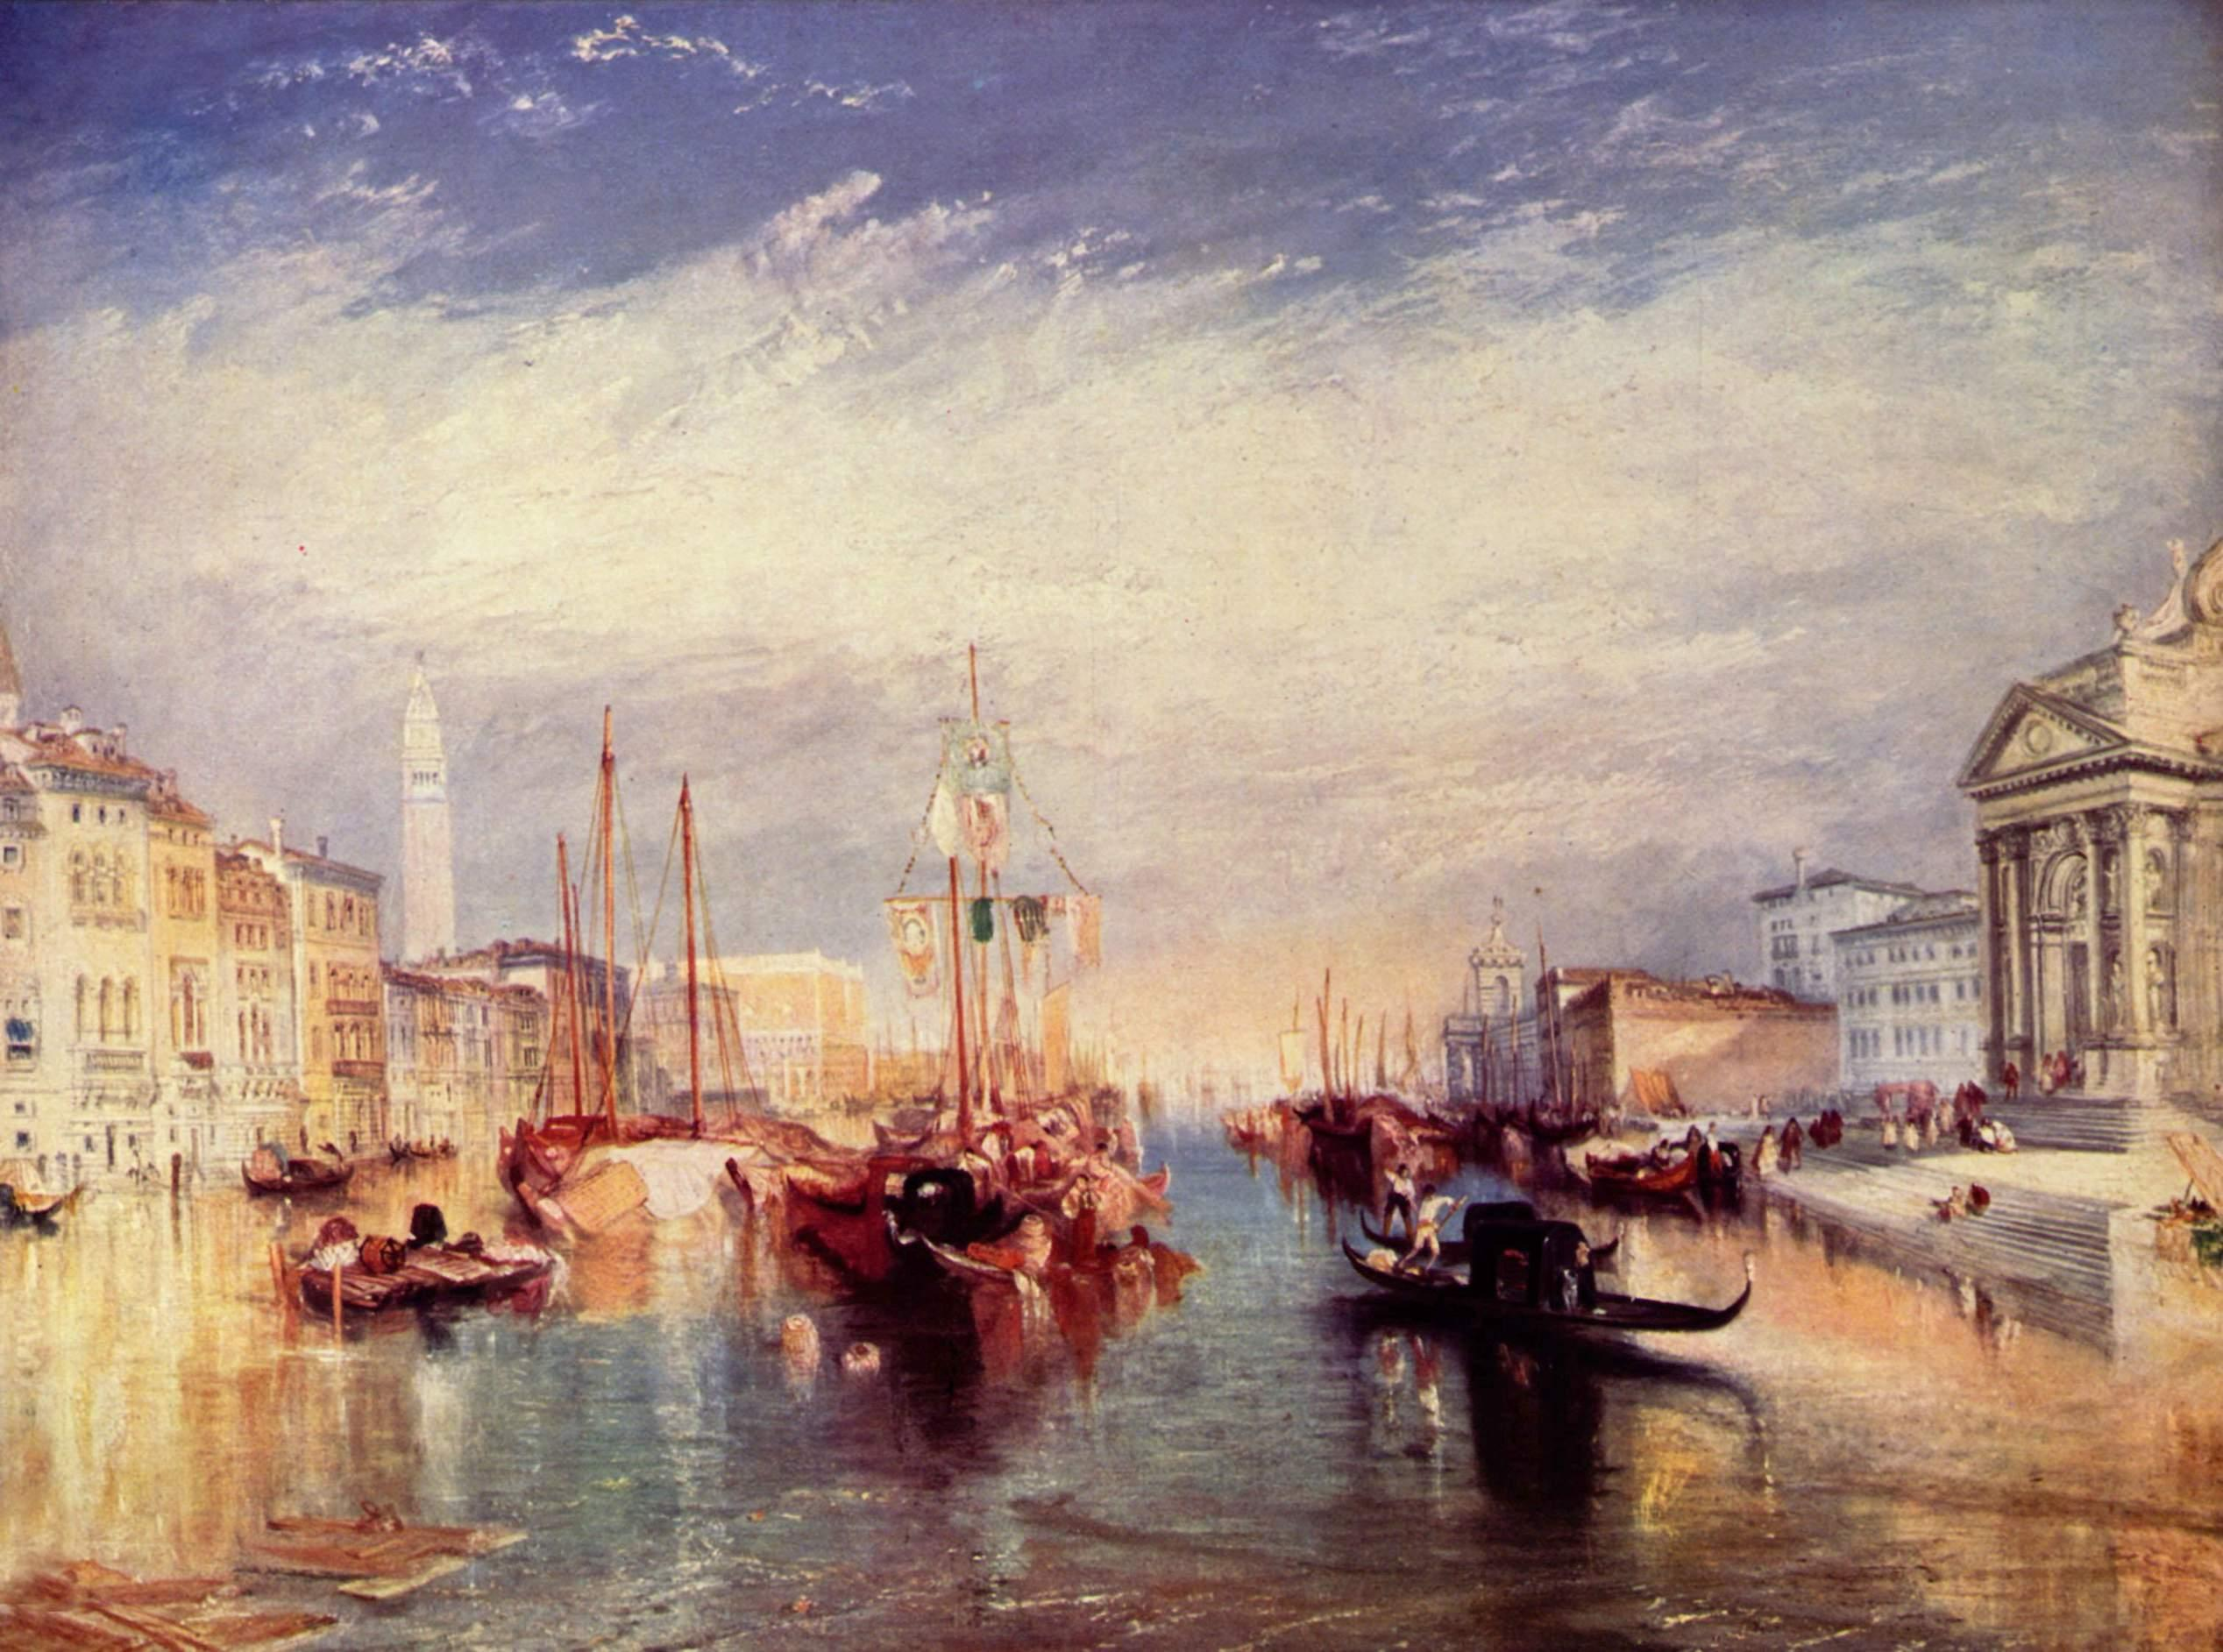 Joseph_Mallord_William_Turner_008.jpg (2536×1885)